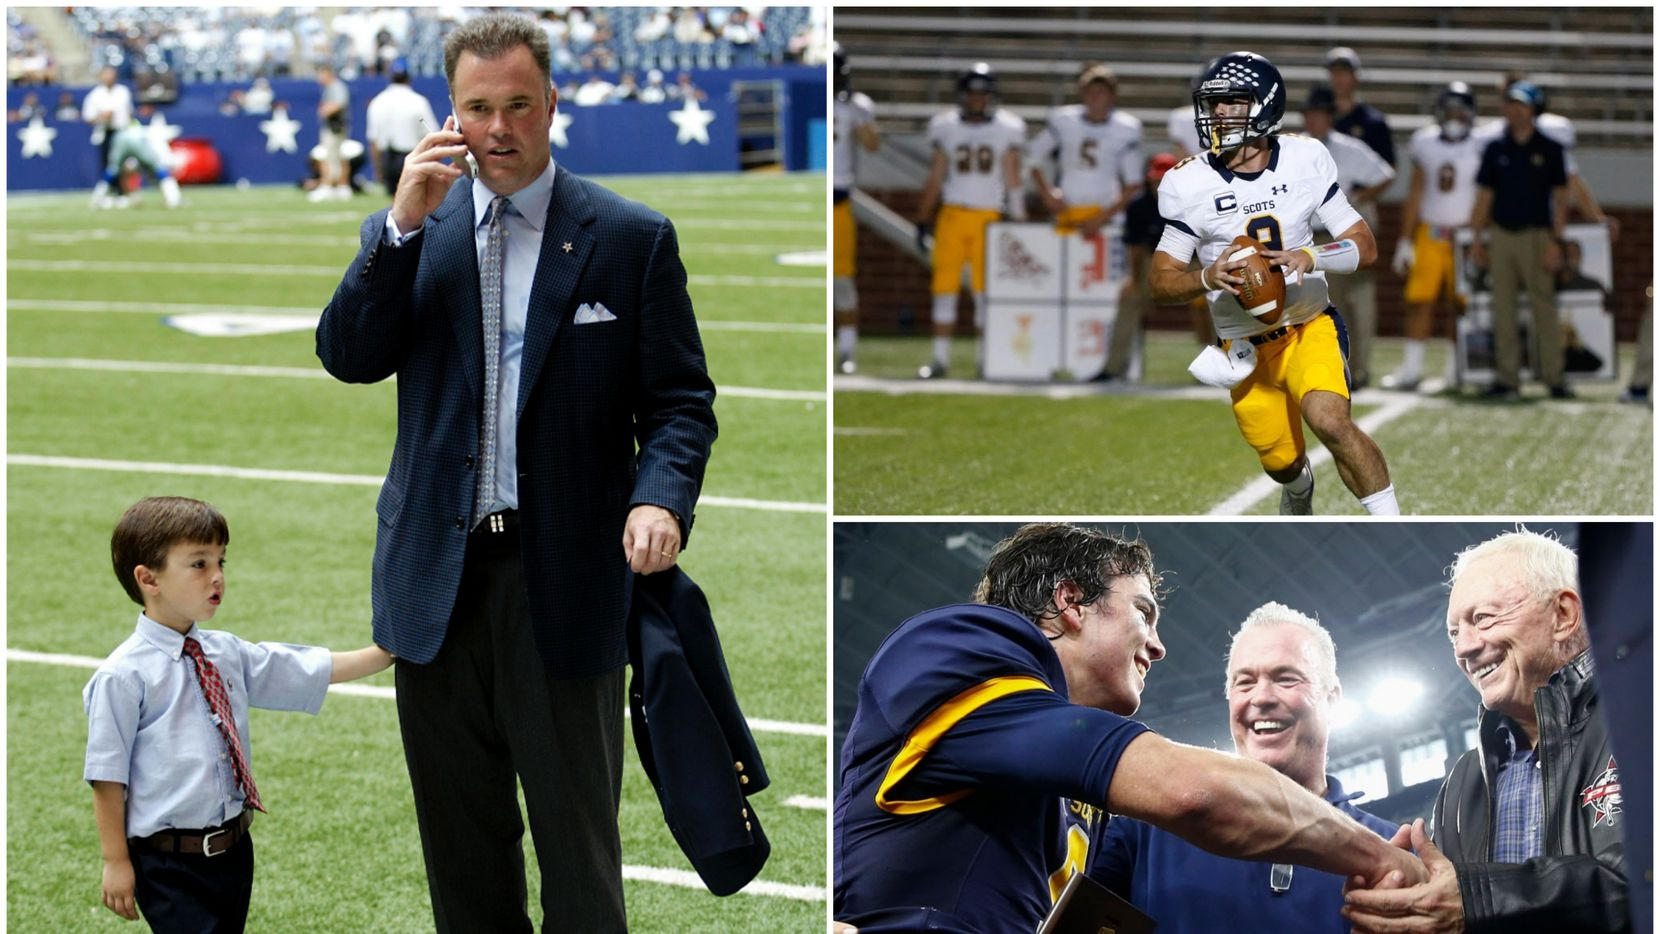 As the son or an NFL executive and grandson of the Dallas Cowboys owner, Highland Park quarterback John Stephen Jones has been around football his whole life -- football at its highest level.